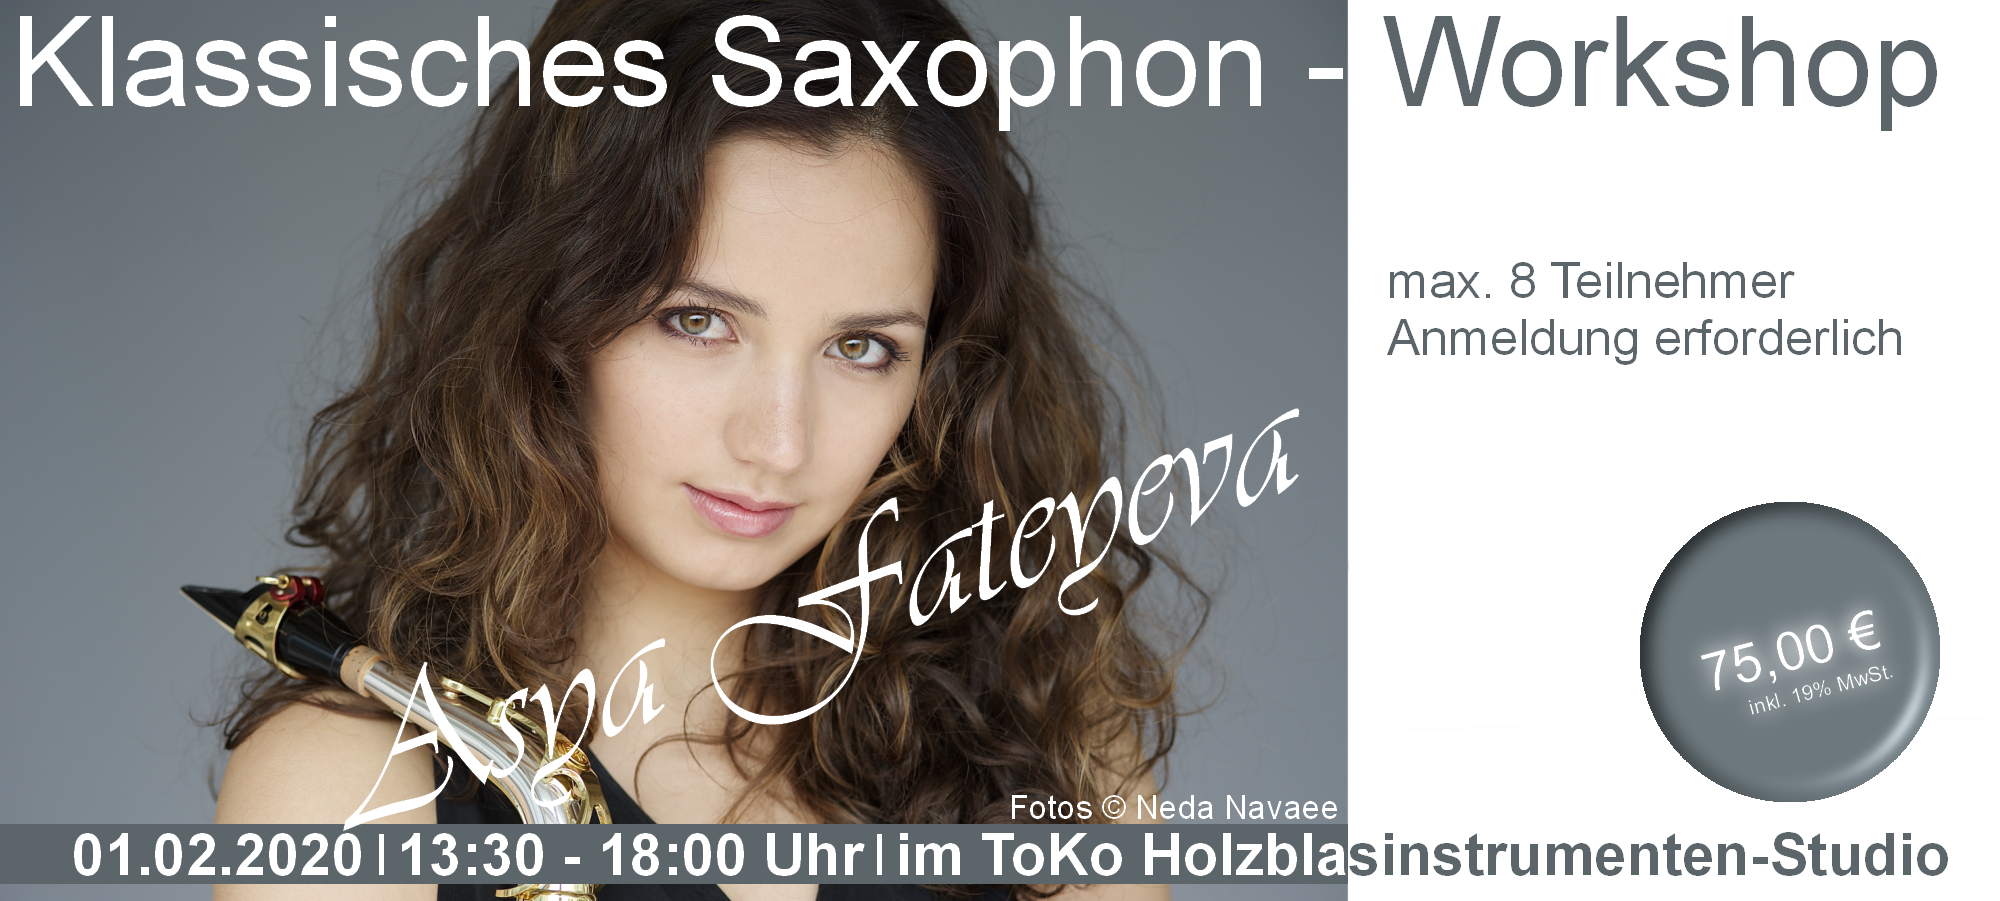 Klassisches Saxophon - Workshop